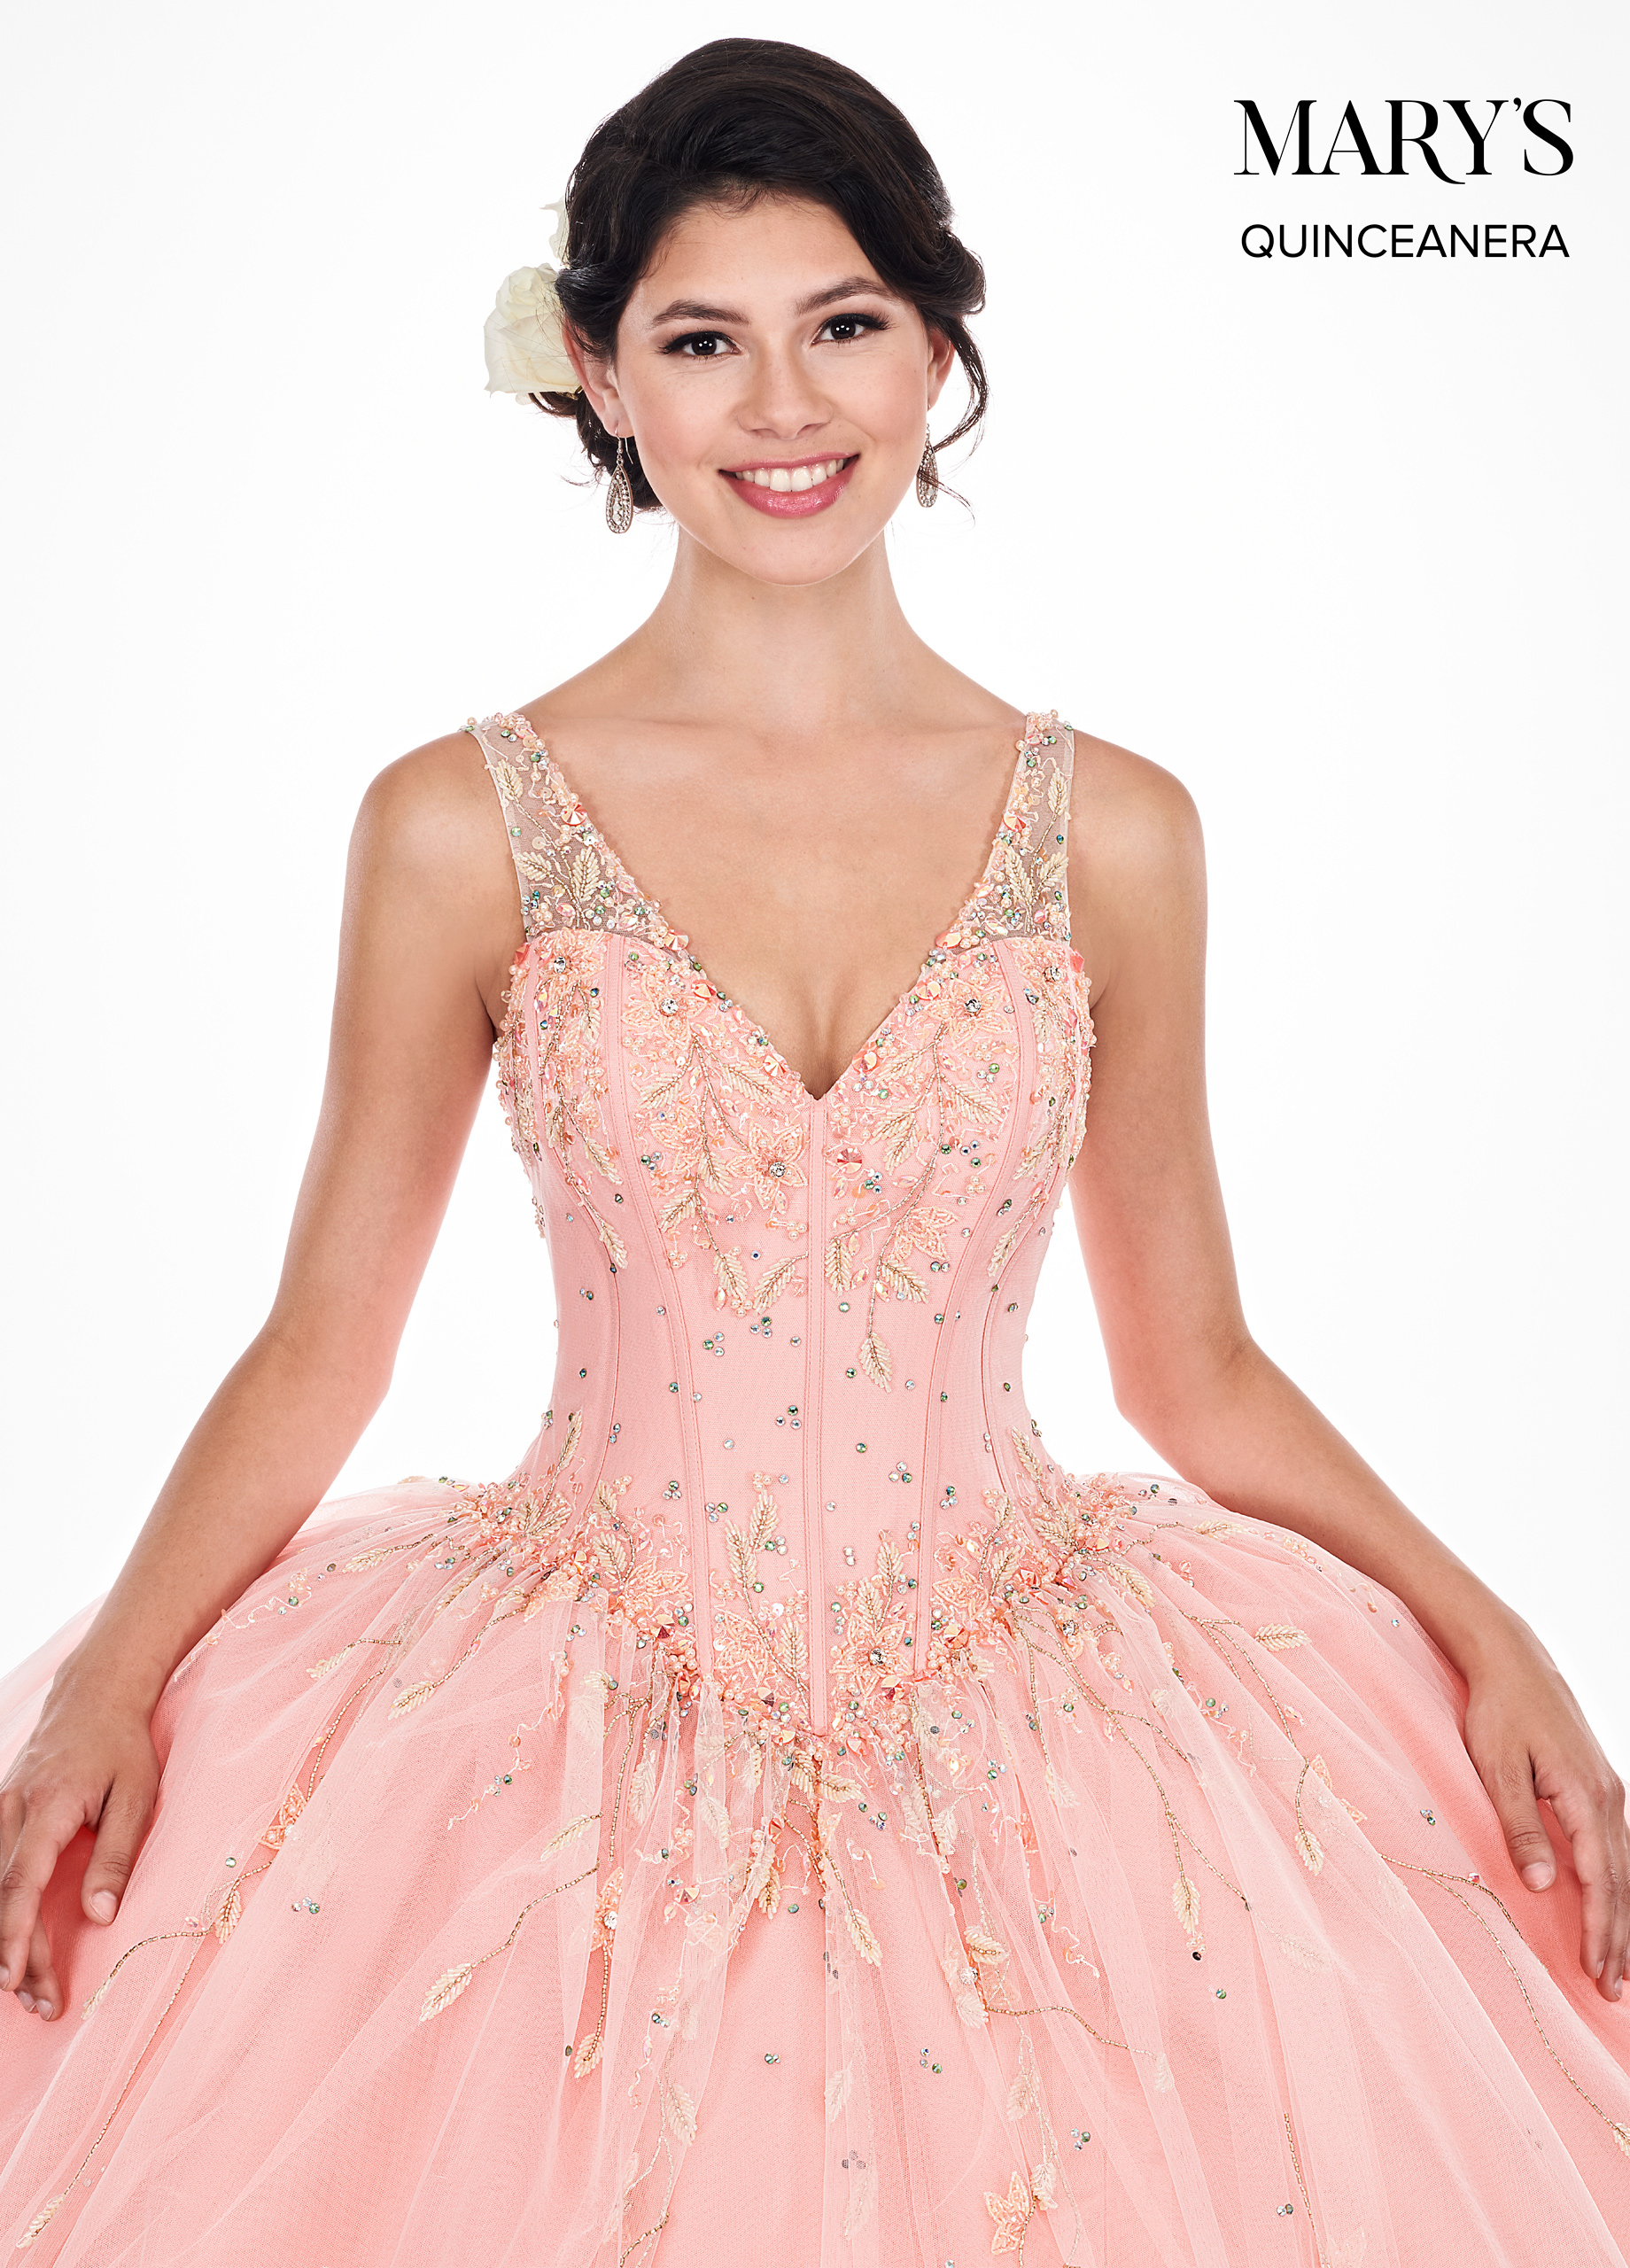 Marys Quinceanera Dresses | Mary's Quinceanera | Style - MQ2052